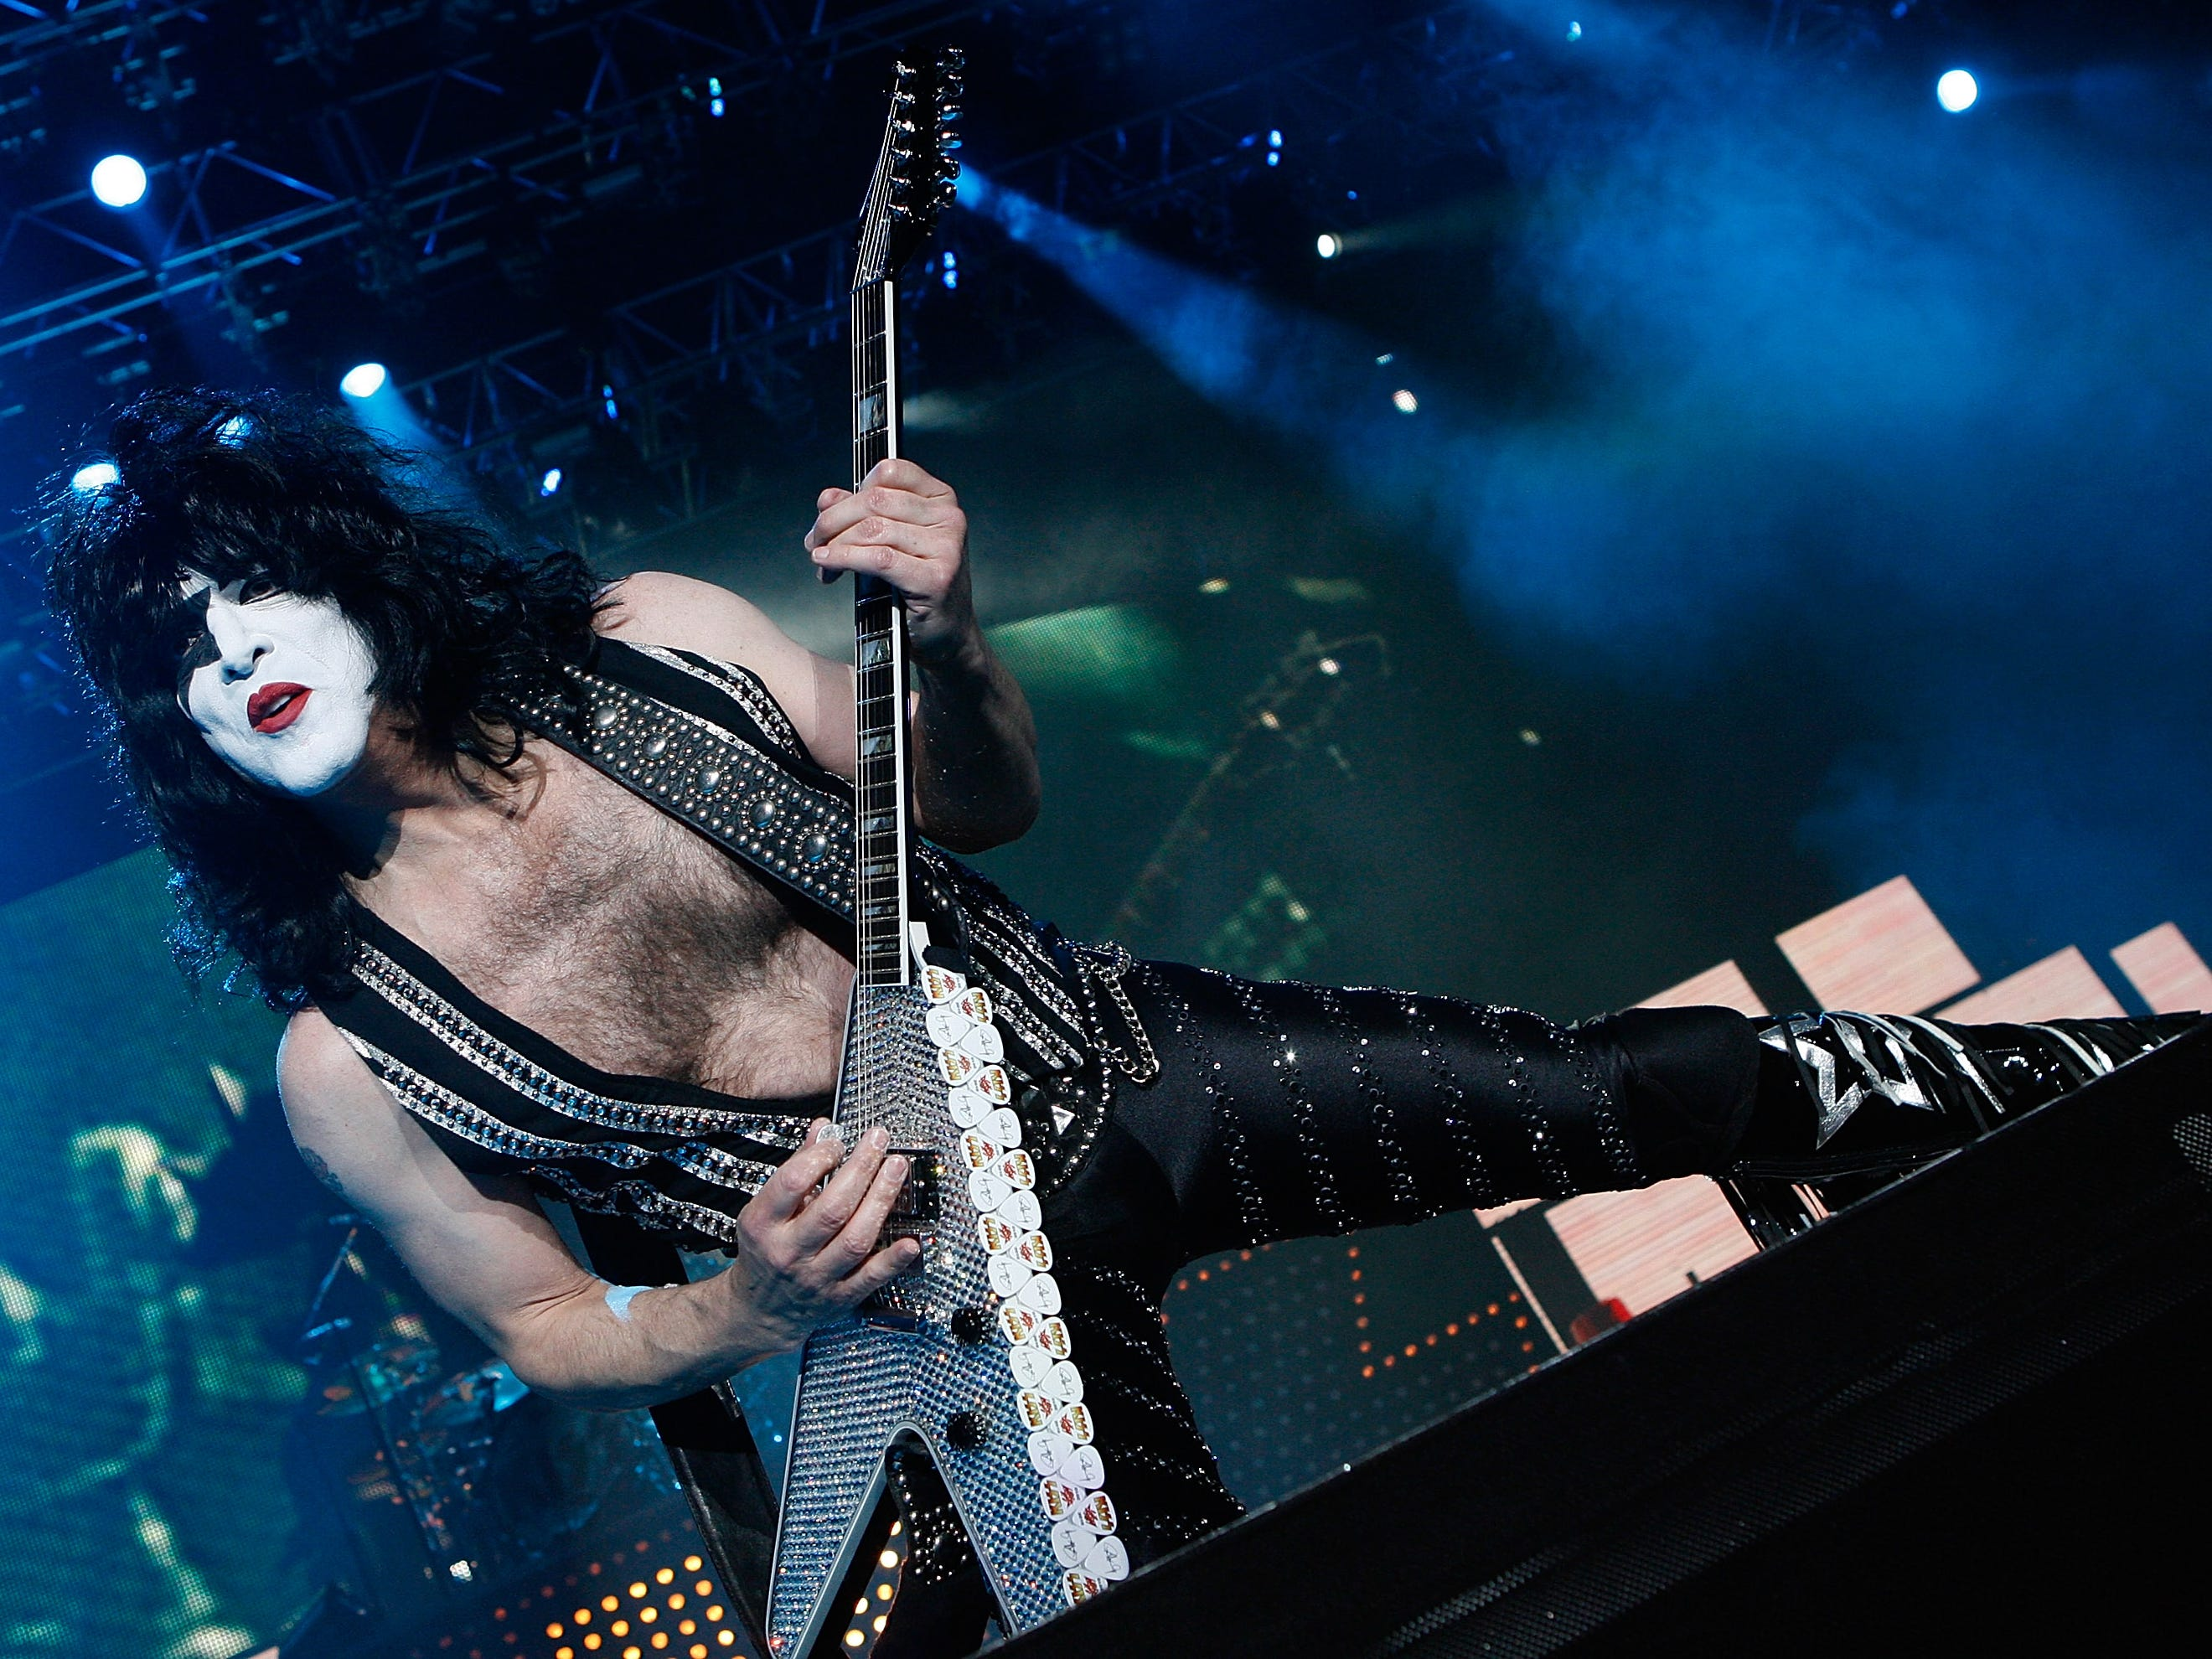 LONDON, UNITED KINGDOM - MAY 12: Paul Stanley of Kiss performs at Wembley Arena on May 12, 2010 in London, England. (Photo by Jo Hale/Getty Images)